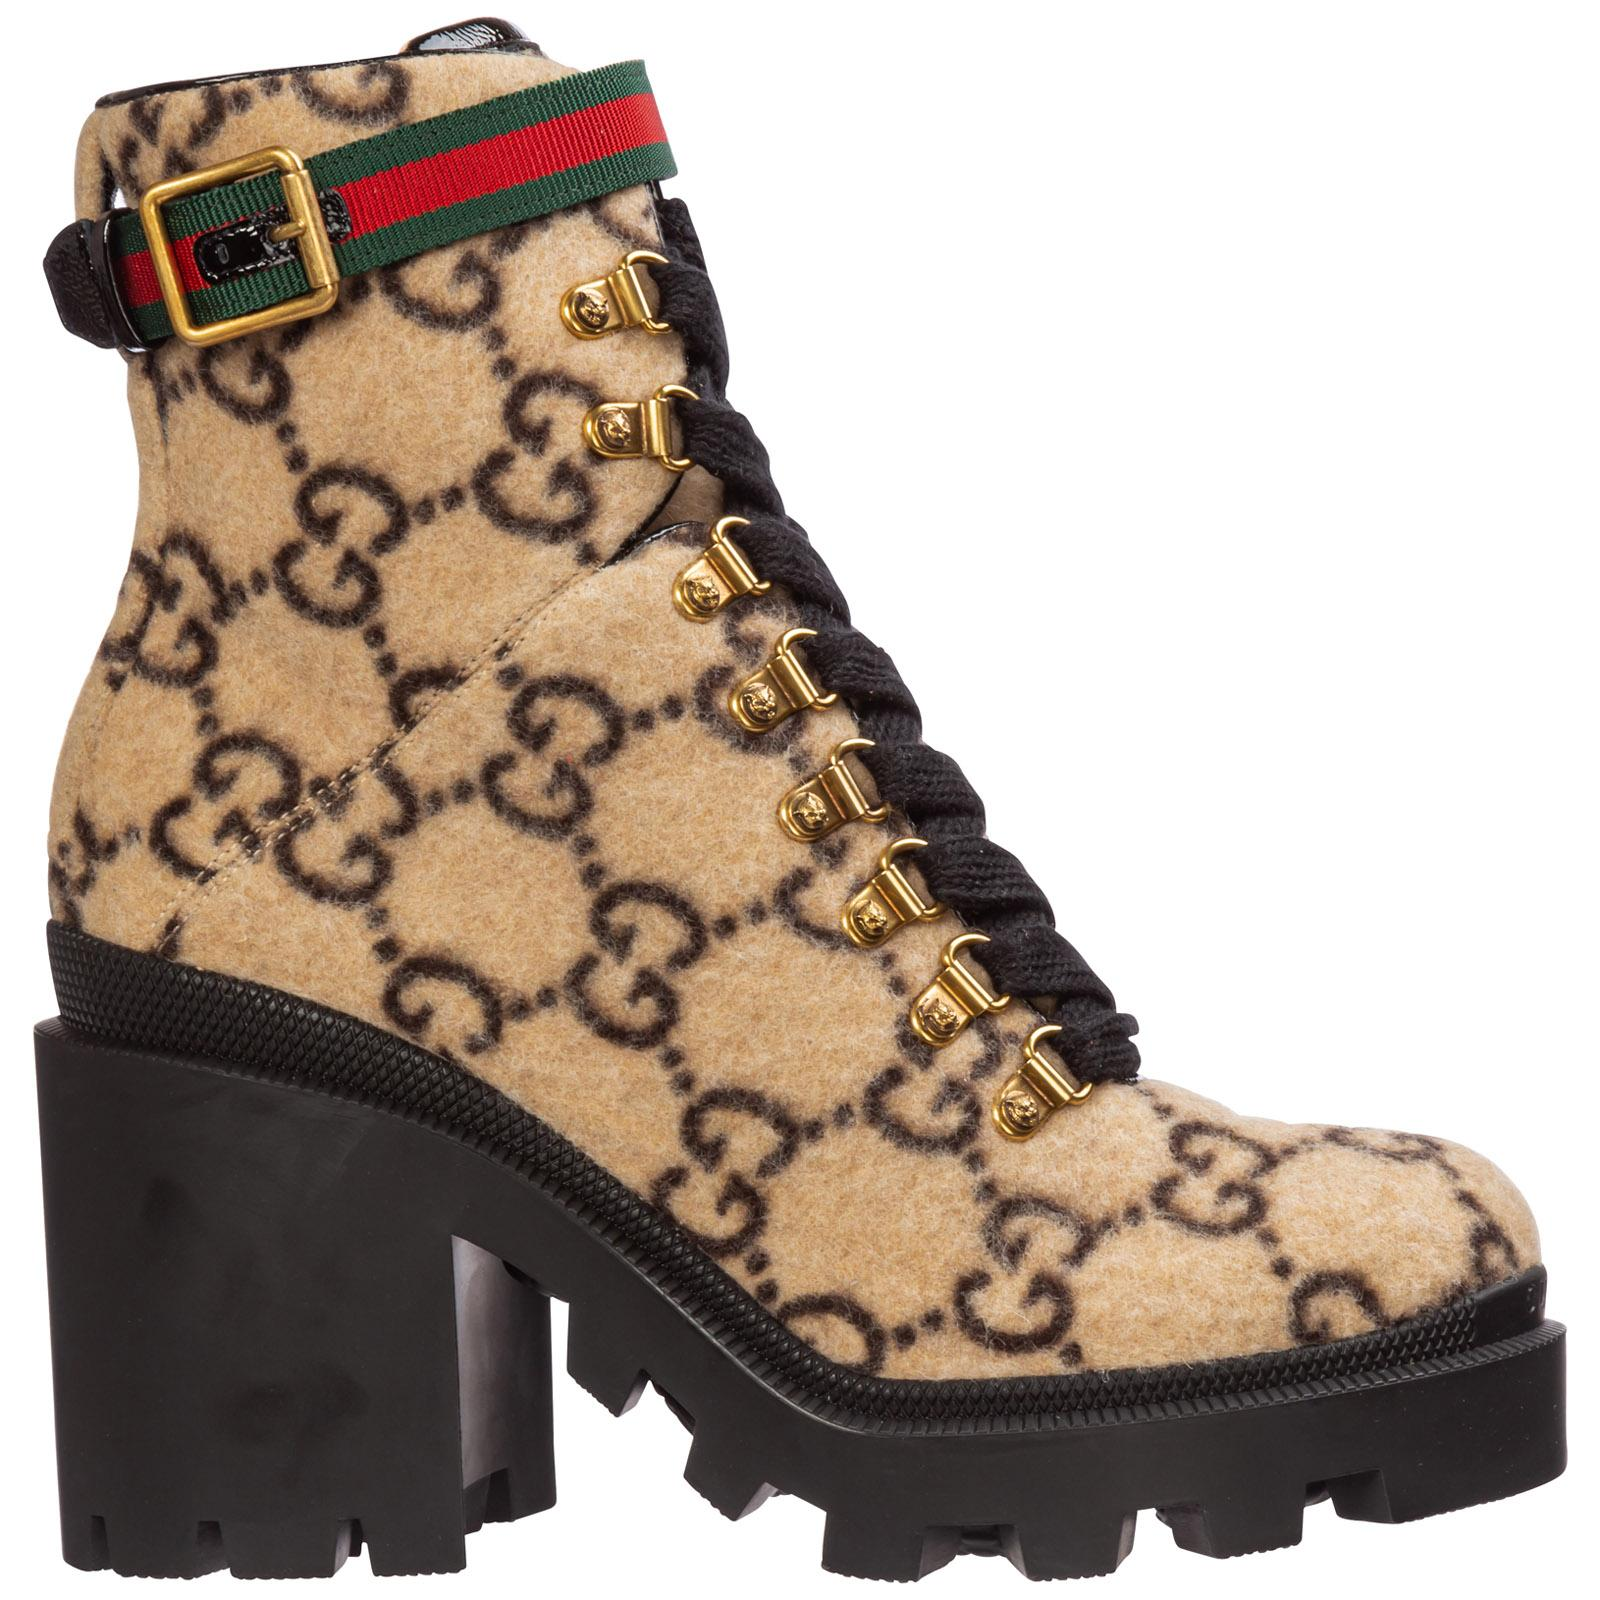 Gucci GG Wool Ankle Boot in Beige